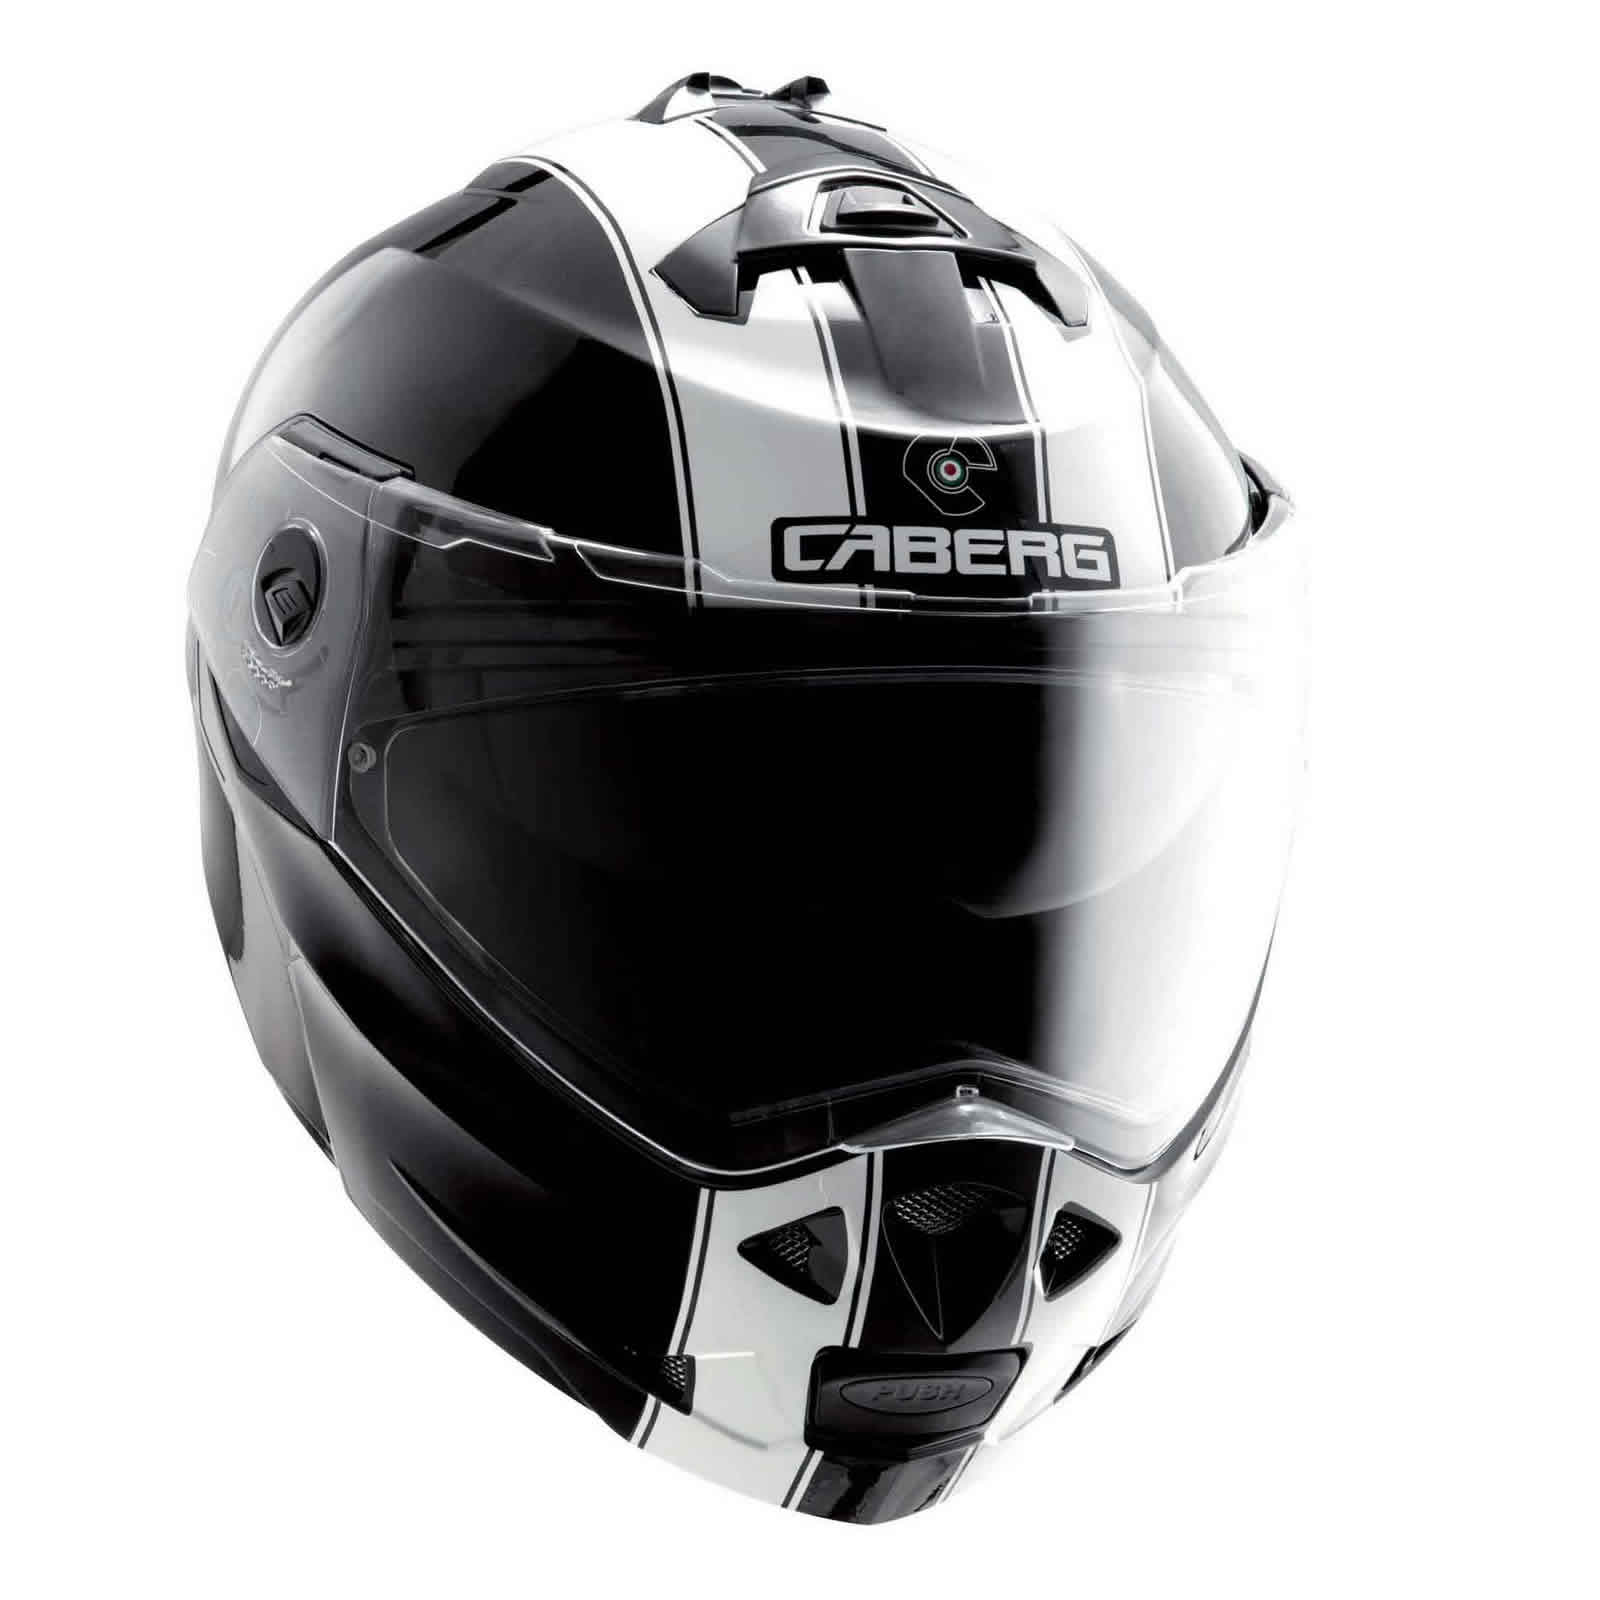 motorbike helmet black and white bcca